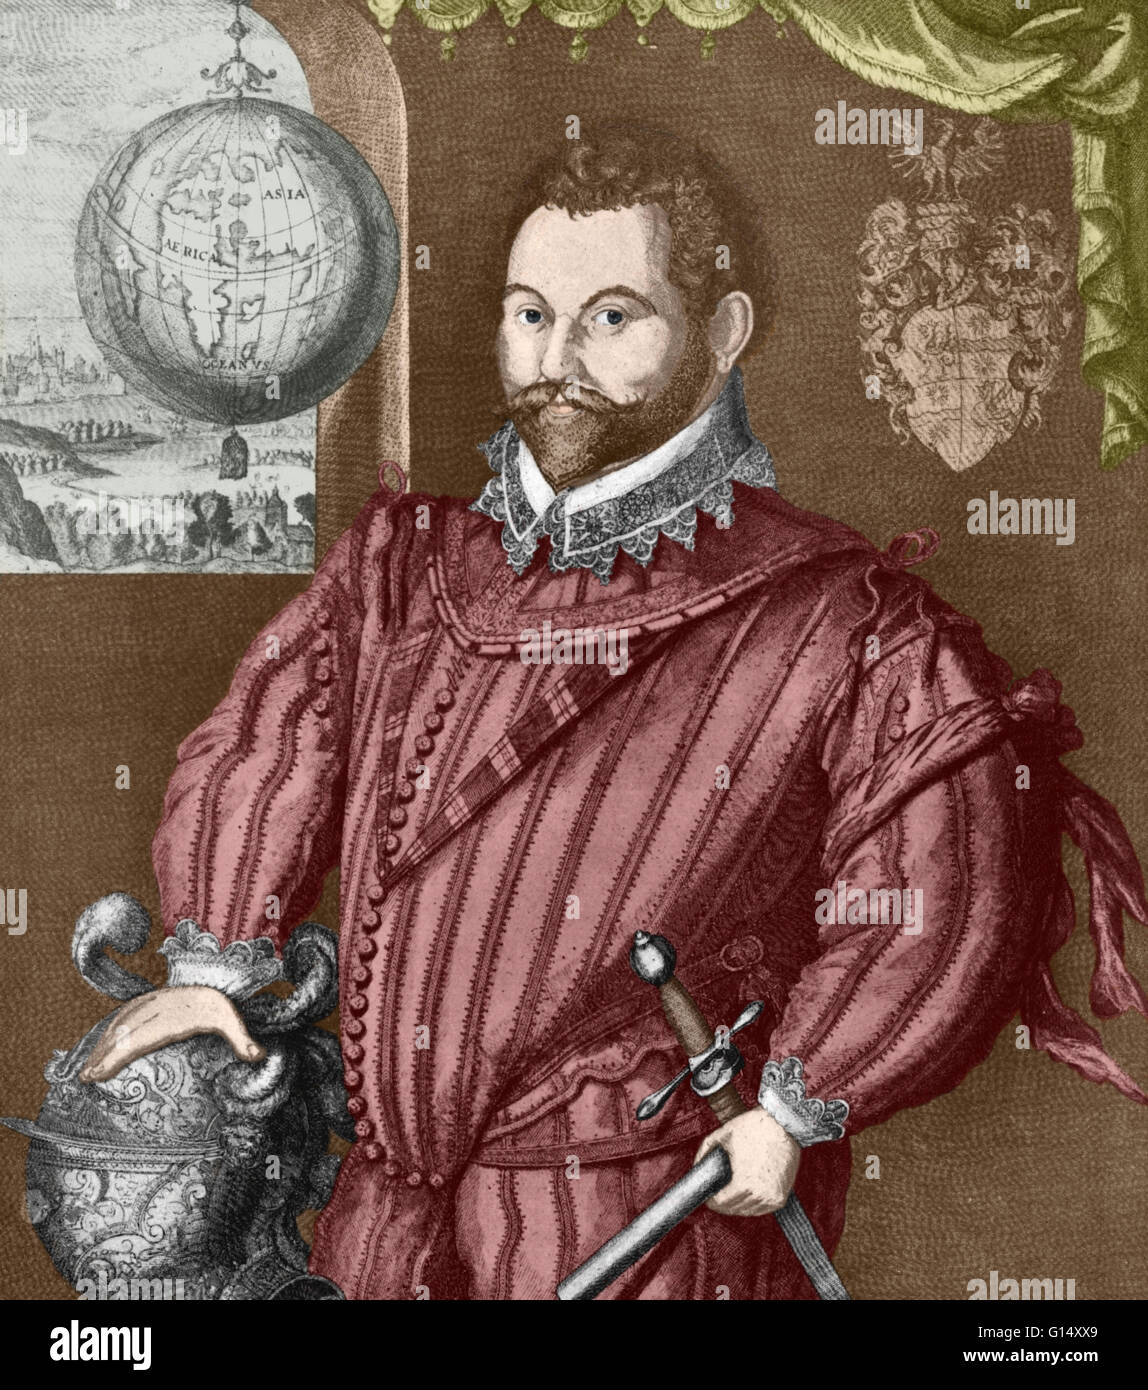 Sir Francis Drake, Vice Admiral (1540-1596) was an English sea captain, privateer, navigator, slaver, explorer and - Stock Image